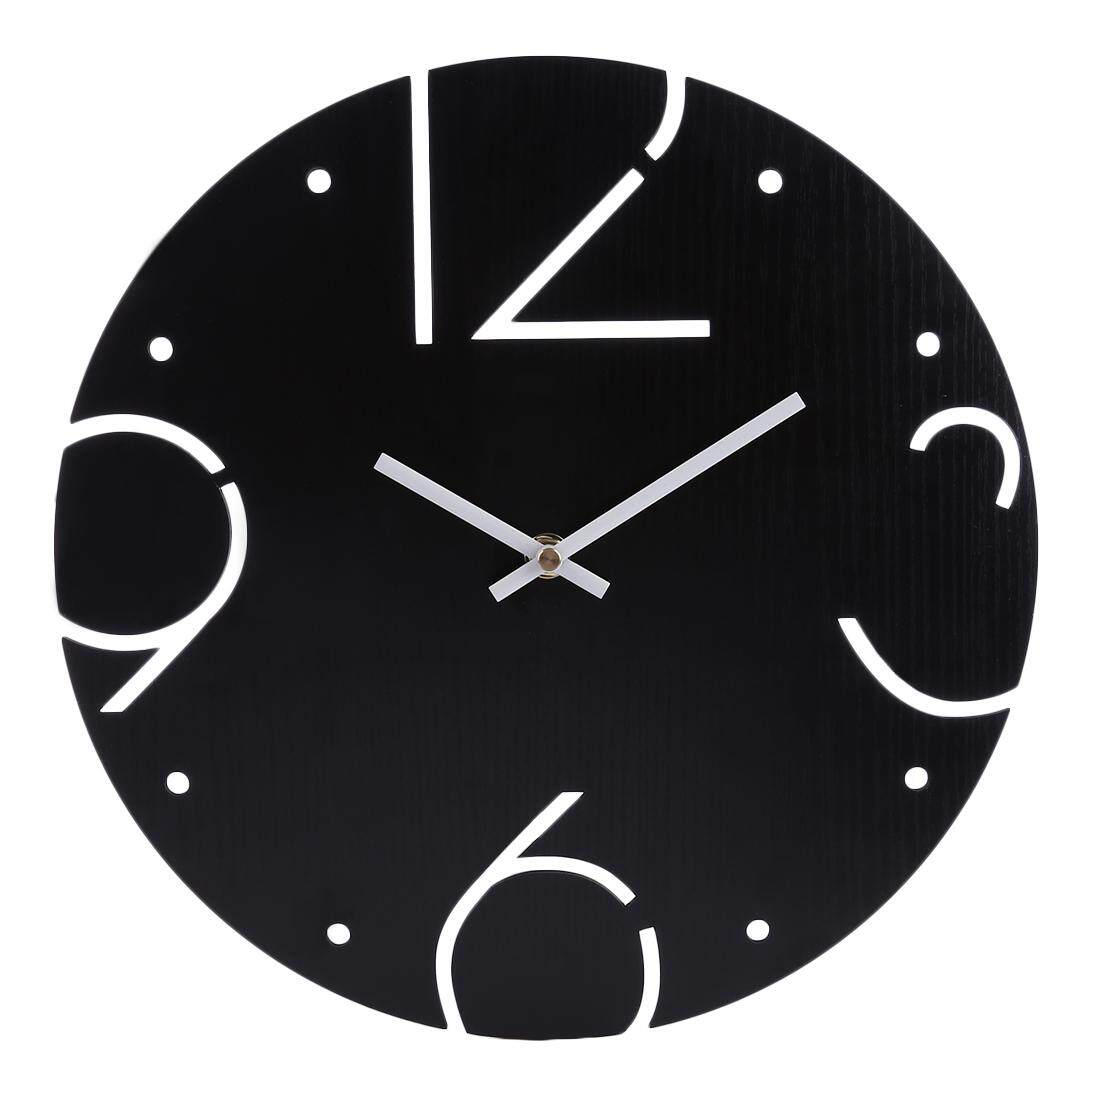 360DSC Interesting Number Noiseless Wall Clock Round Shape Silent Battery Operated Hanging Clock - Black - intl